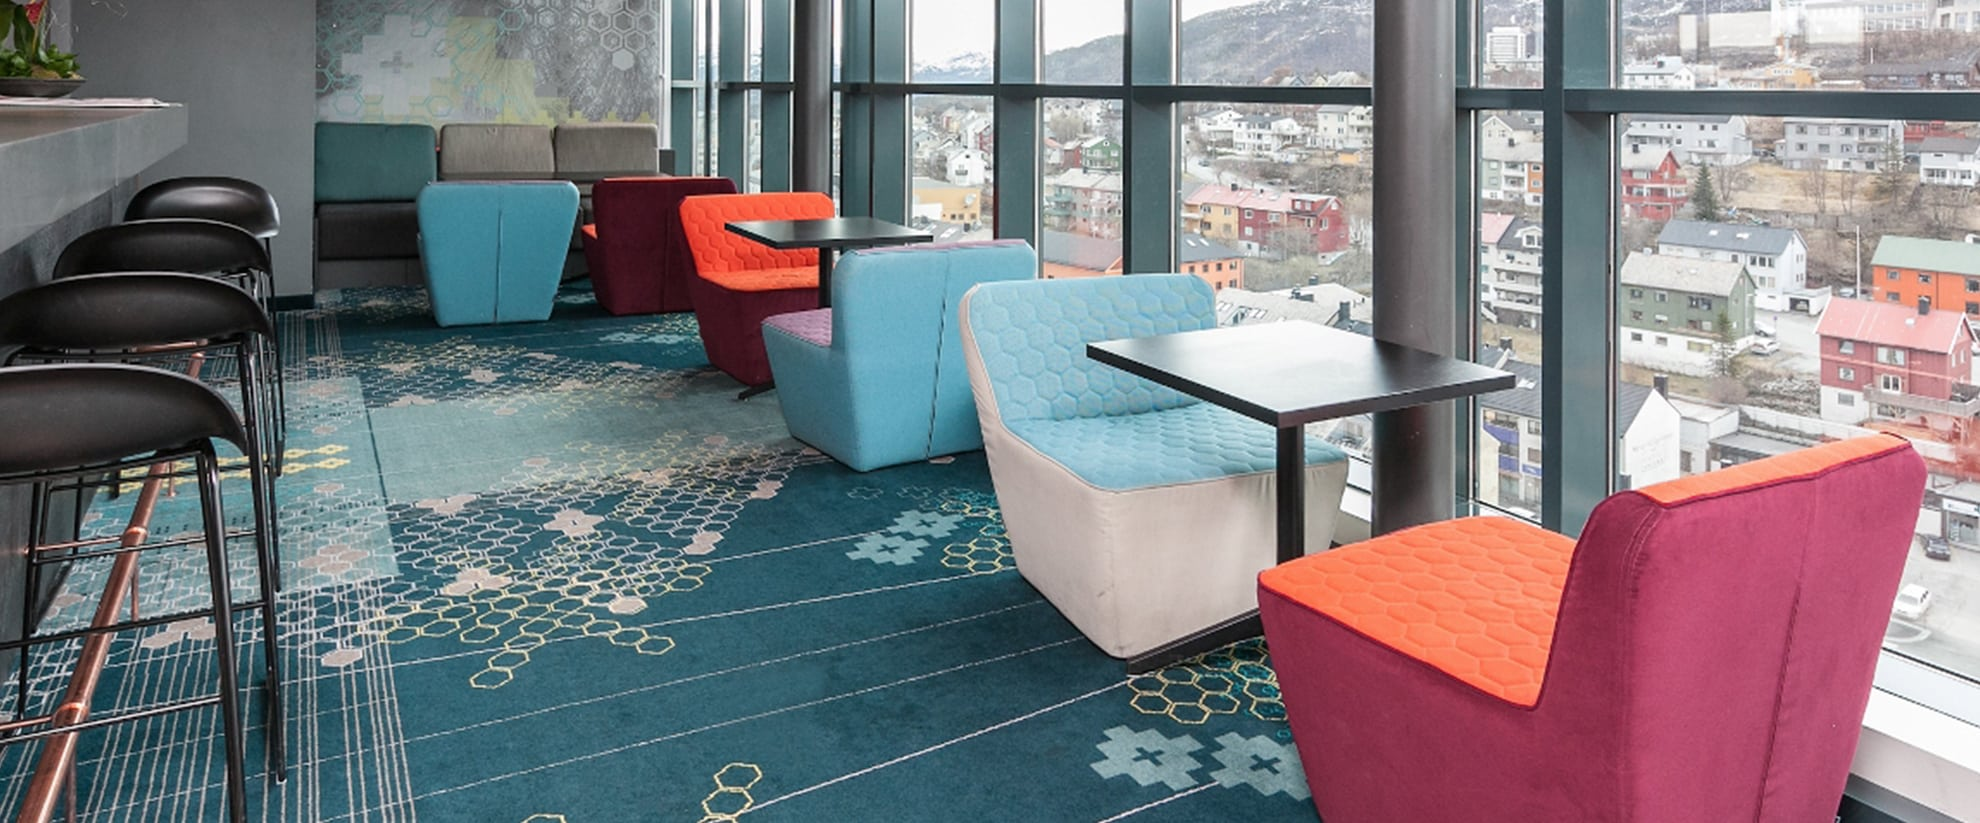 Colortec is a high quality carpet from Dansk Wilton, which ensures the luxury touch and an all-over comfortable feeling combined with a high durability to reduce costs in refurbishing cycles